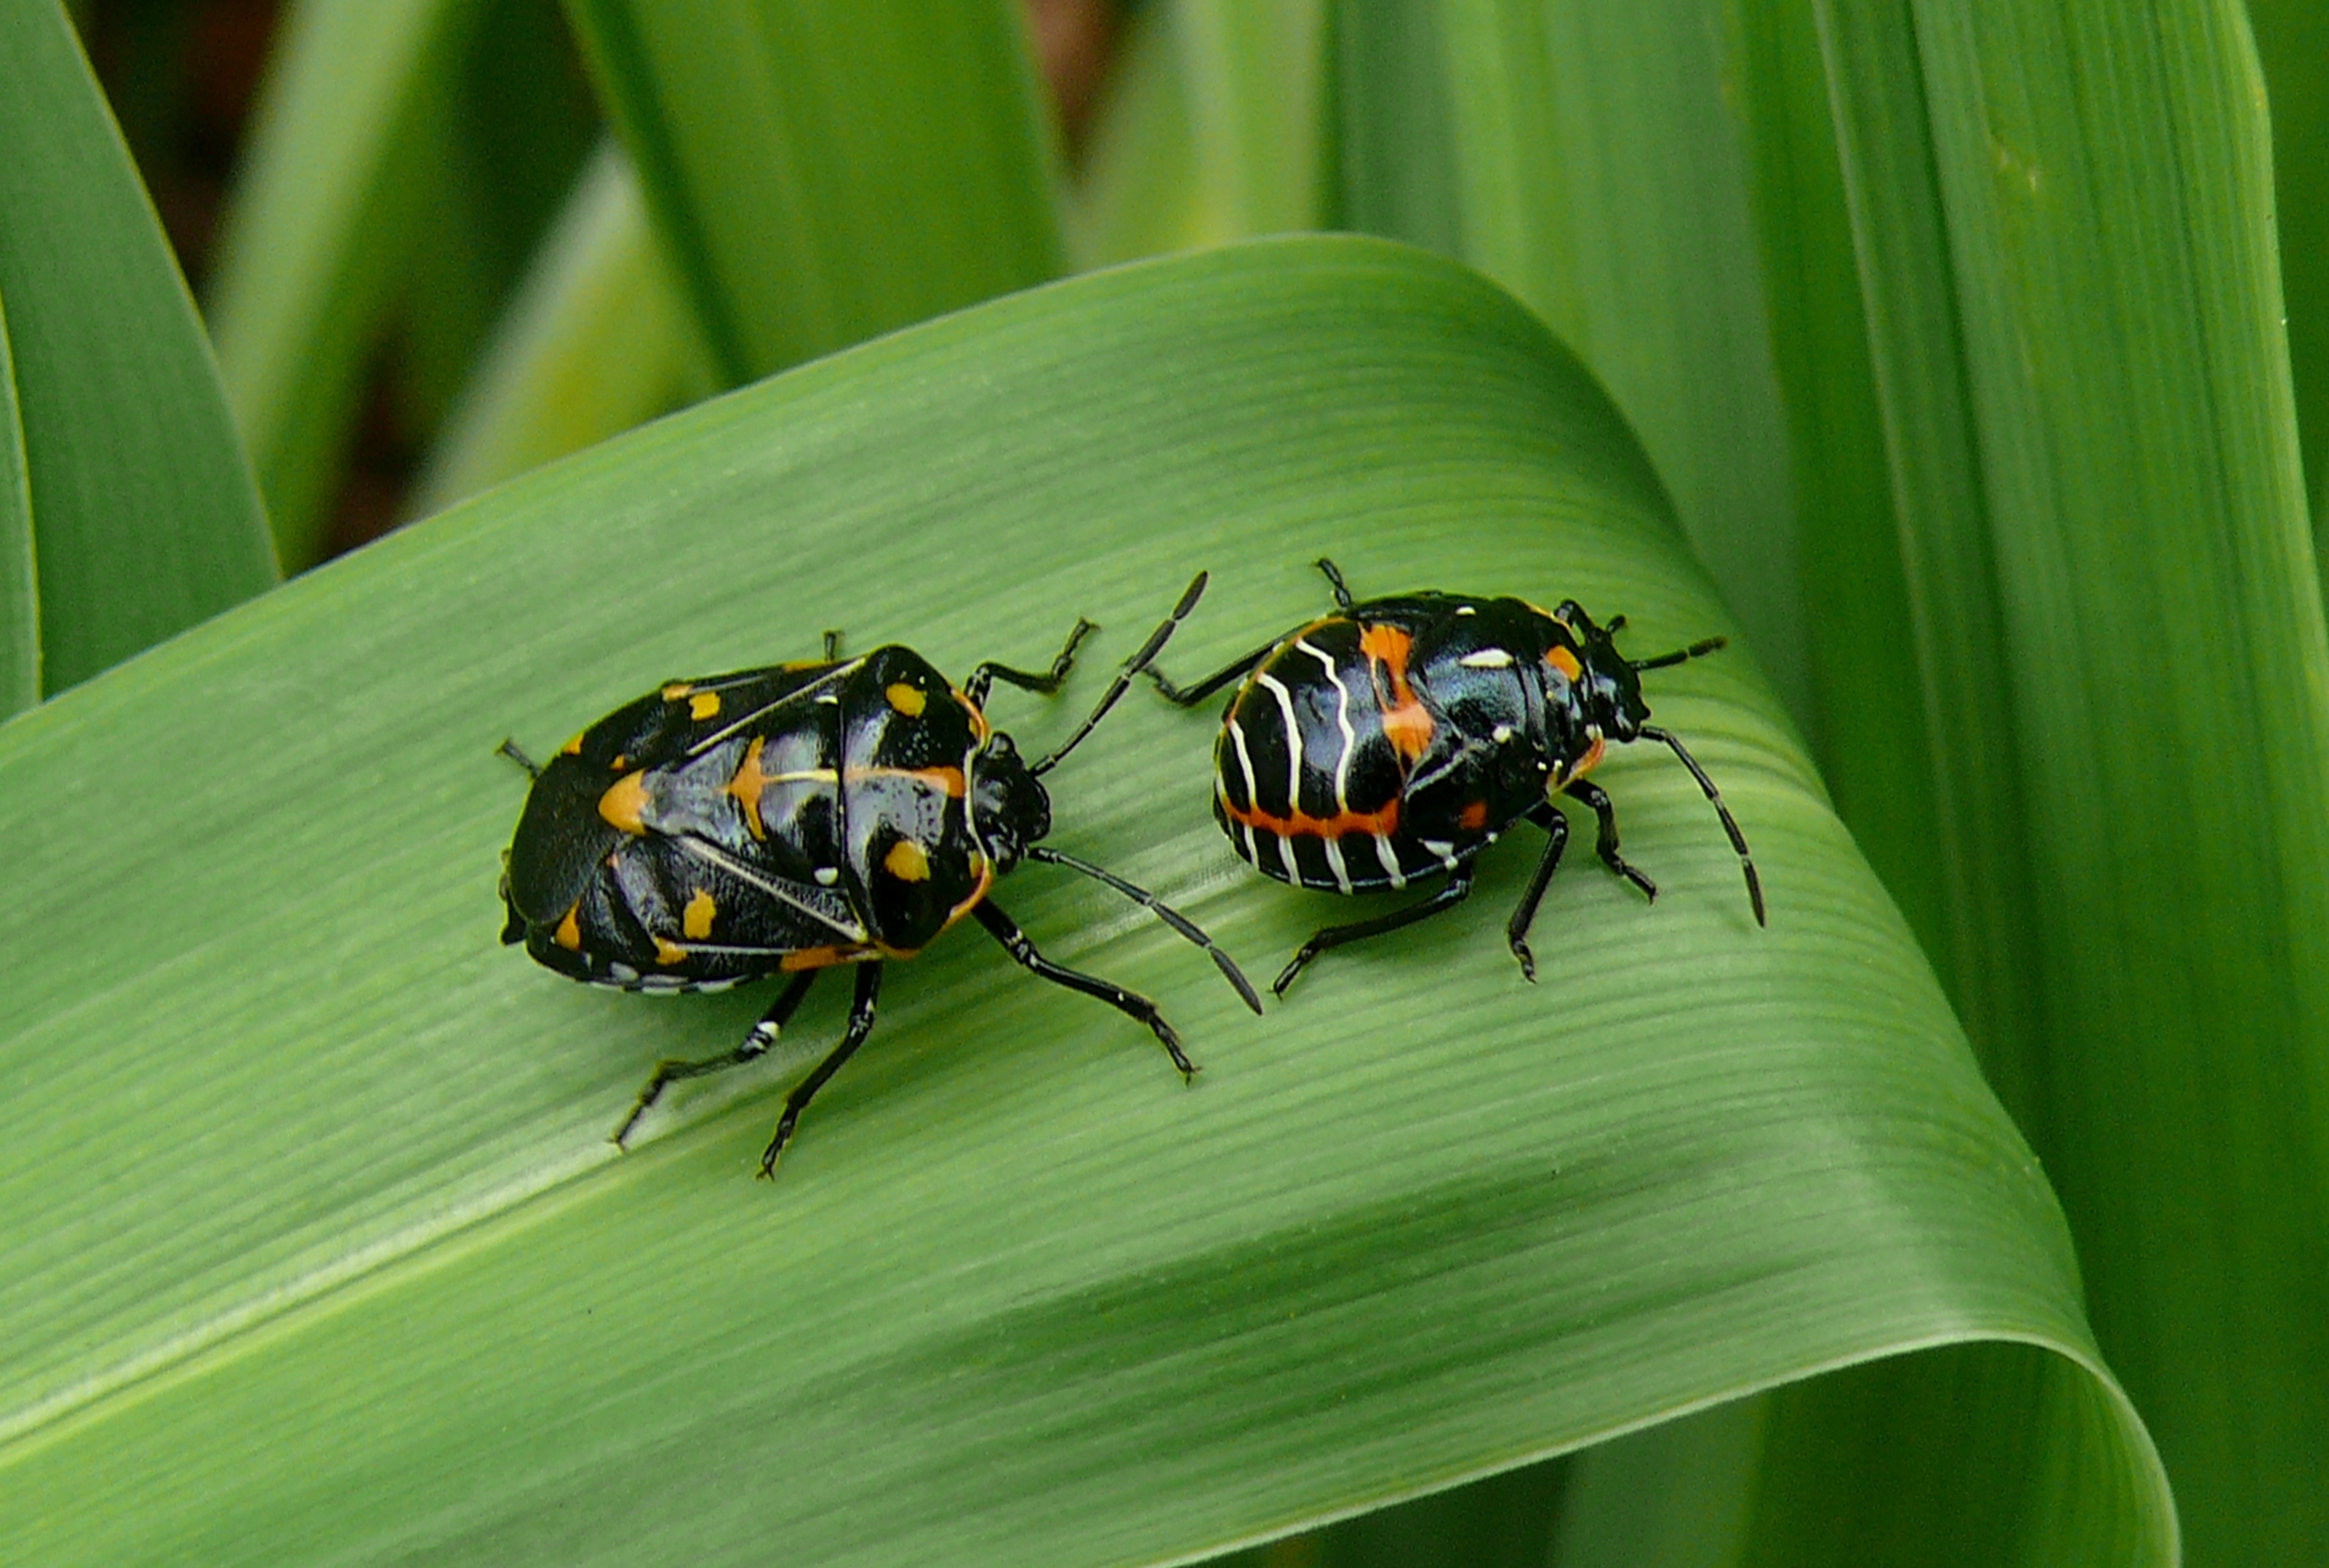 This is harlequin cabbage bug, not a tick